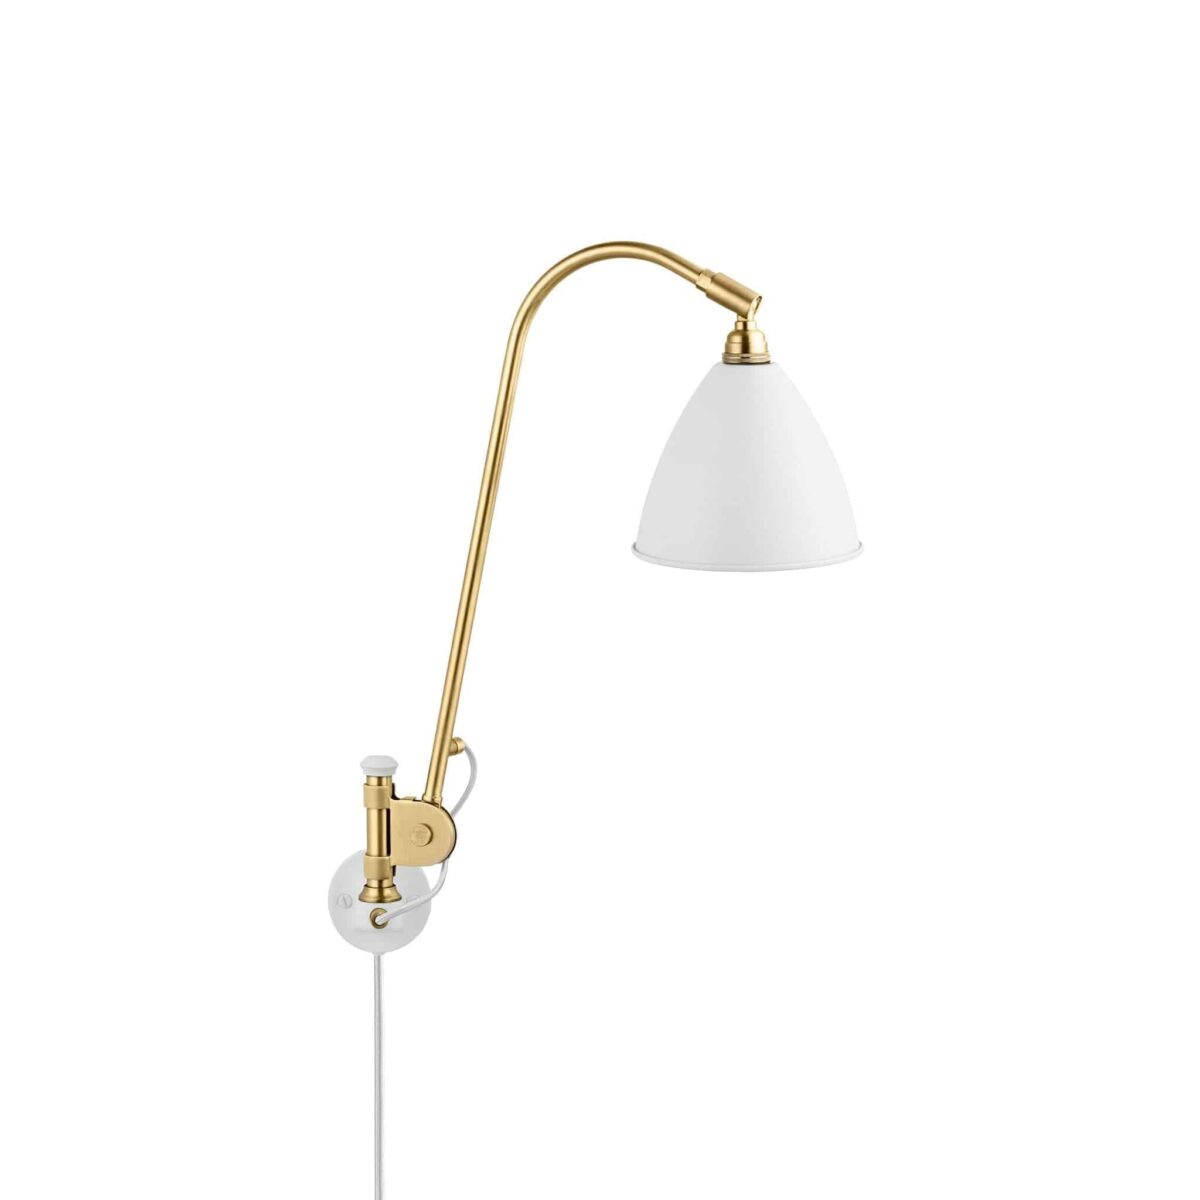 gubi-bestlite-wall-lamp-BL6-matt-white-brass-01